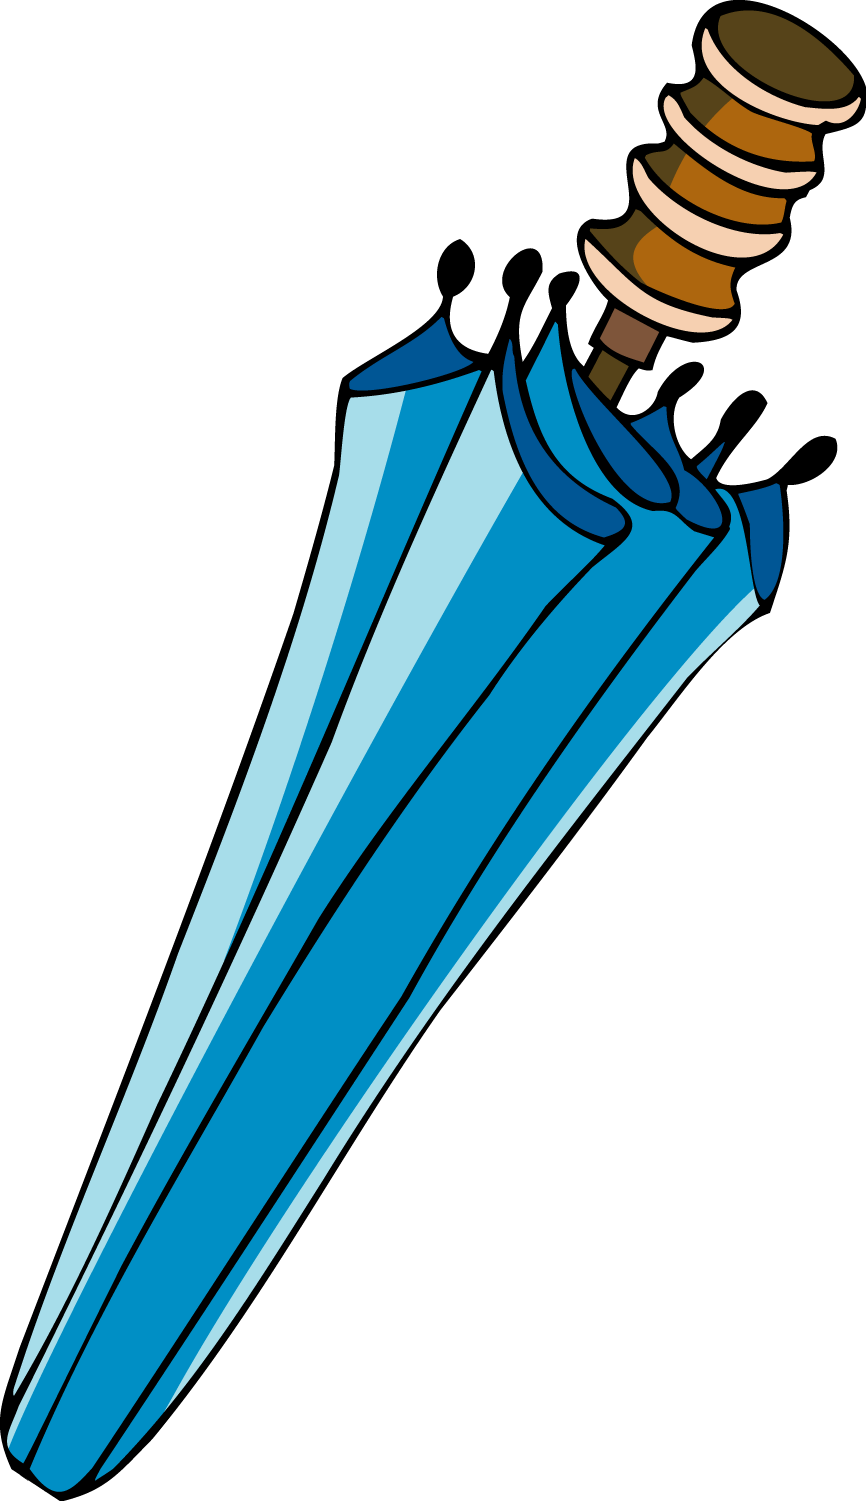 Umbrella Clipart : umbrella, clipart, Umbrella, Closed, Library